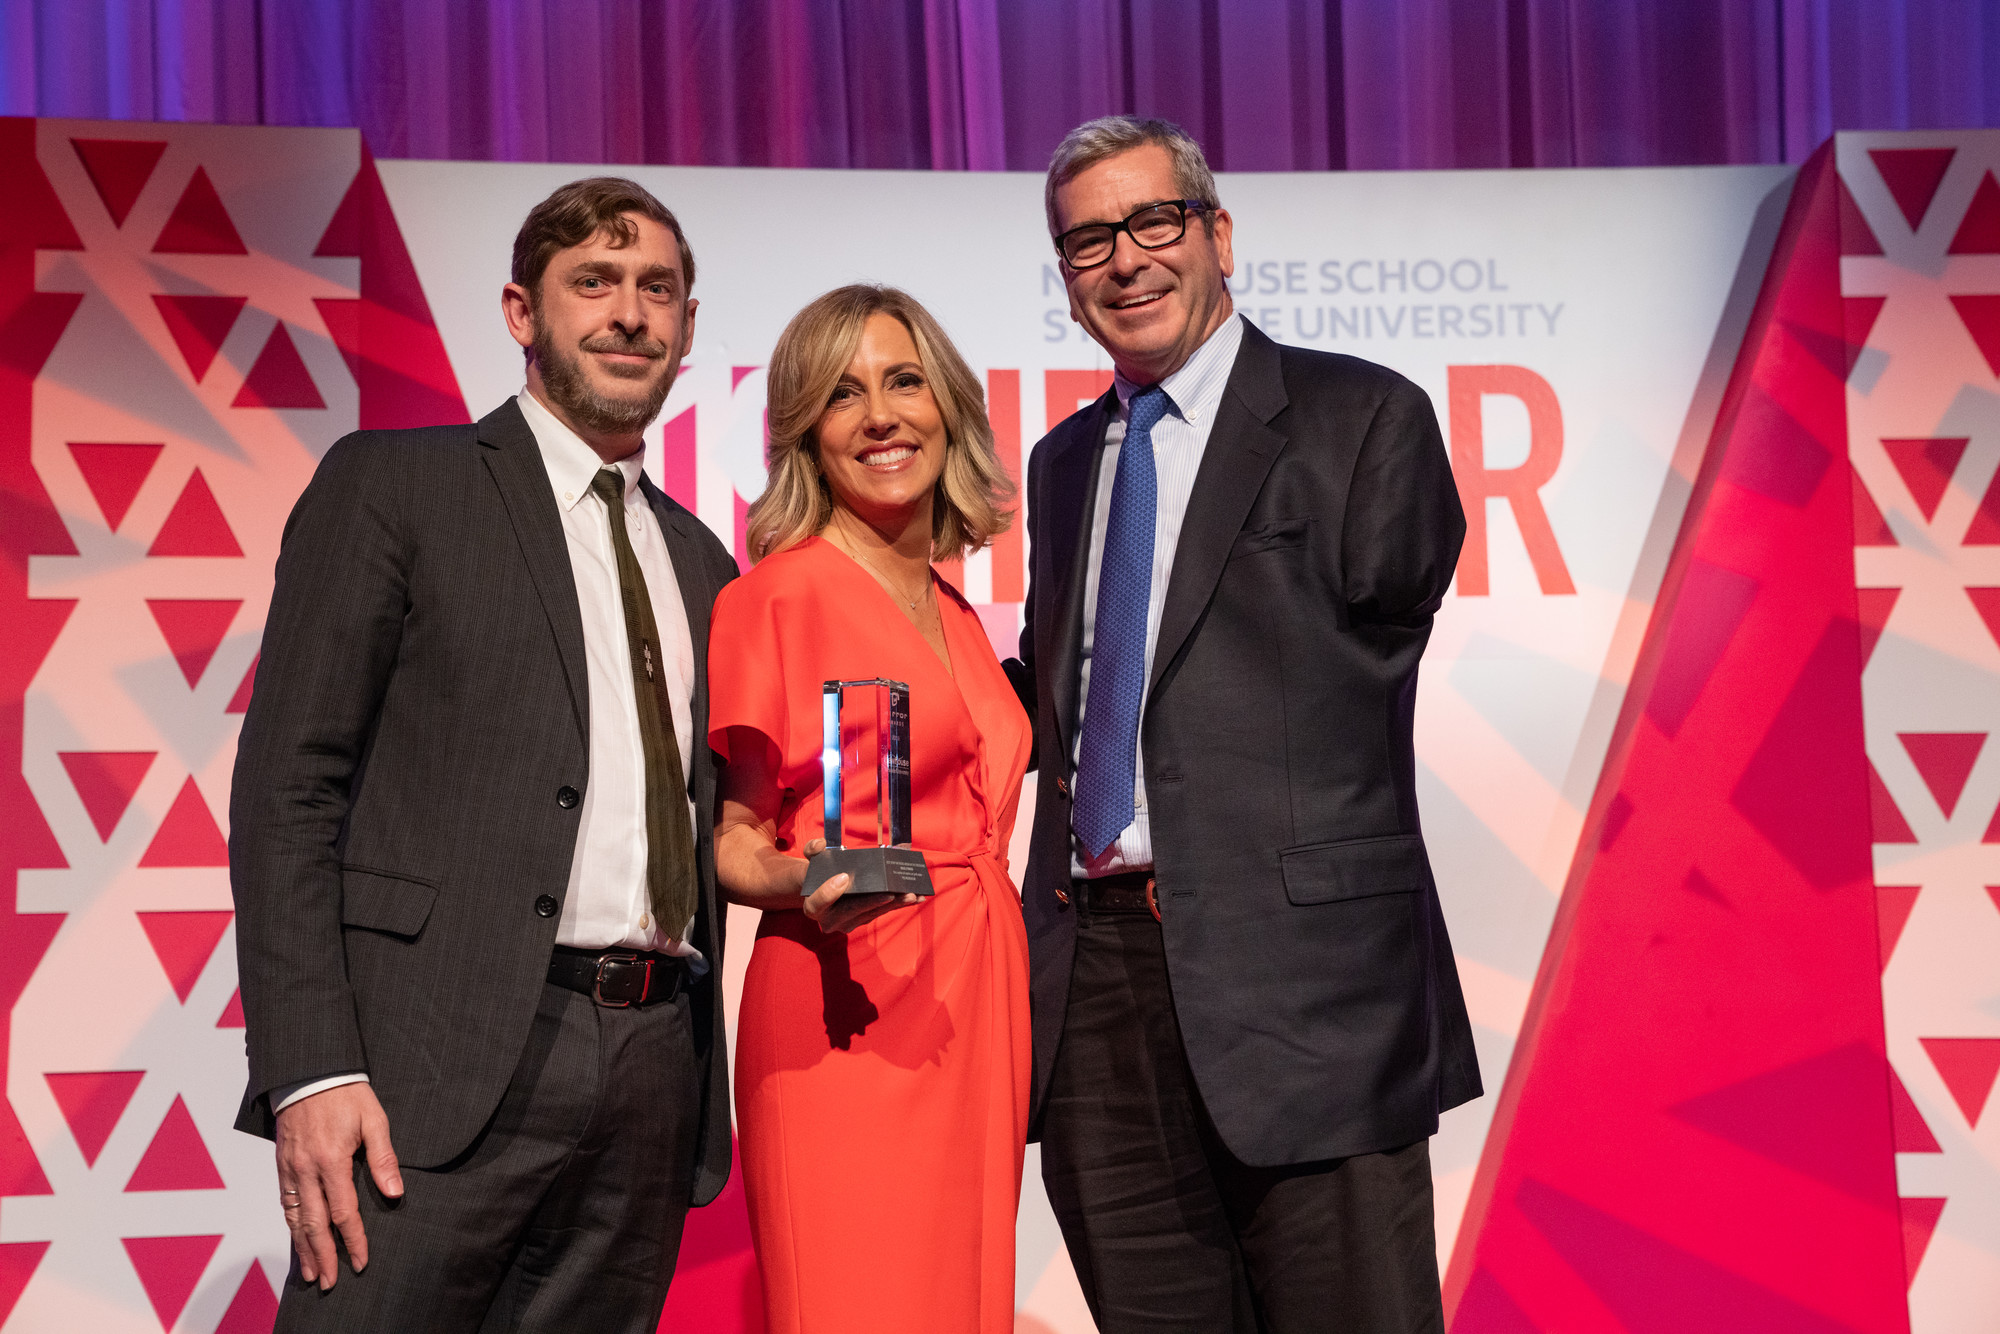 Best Story on Social Media in the Crosshairs co-winner Miles O'Brien (right) and his producer, Cameron Hickey, with Alisyn Camerota